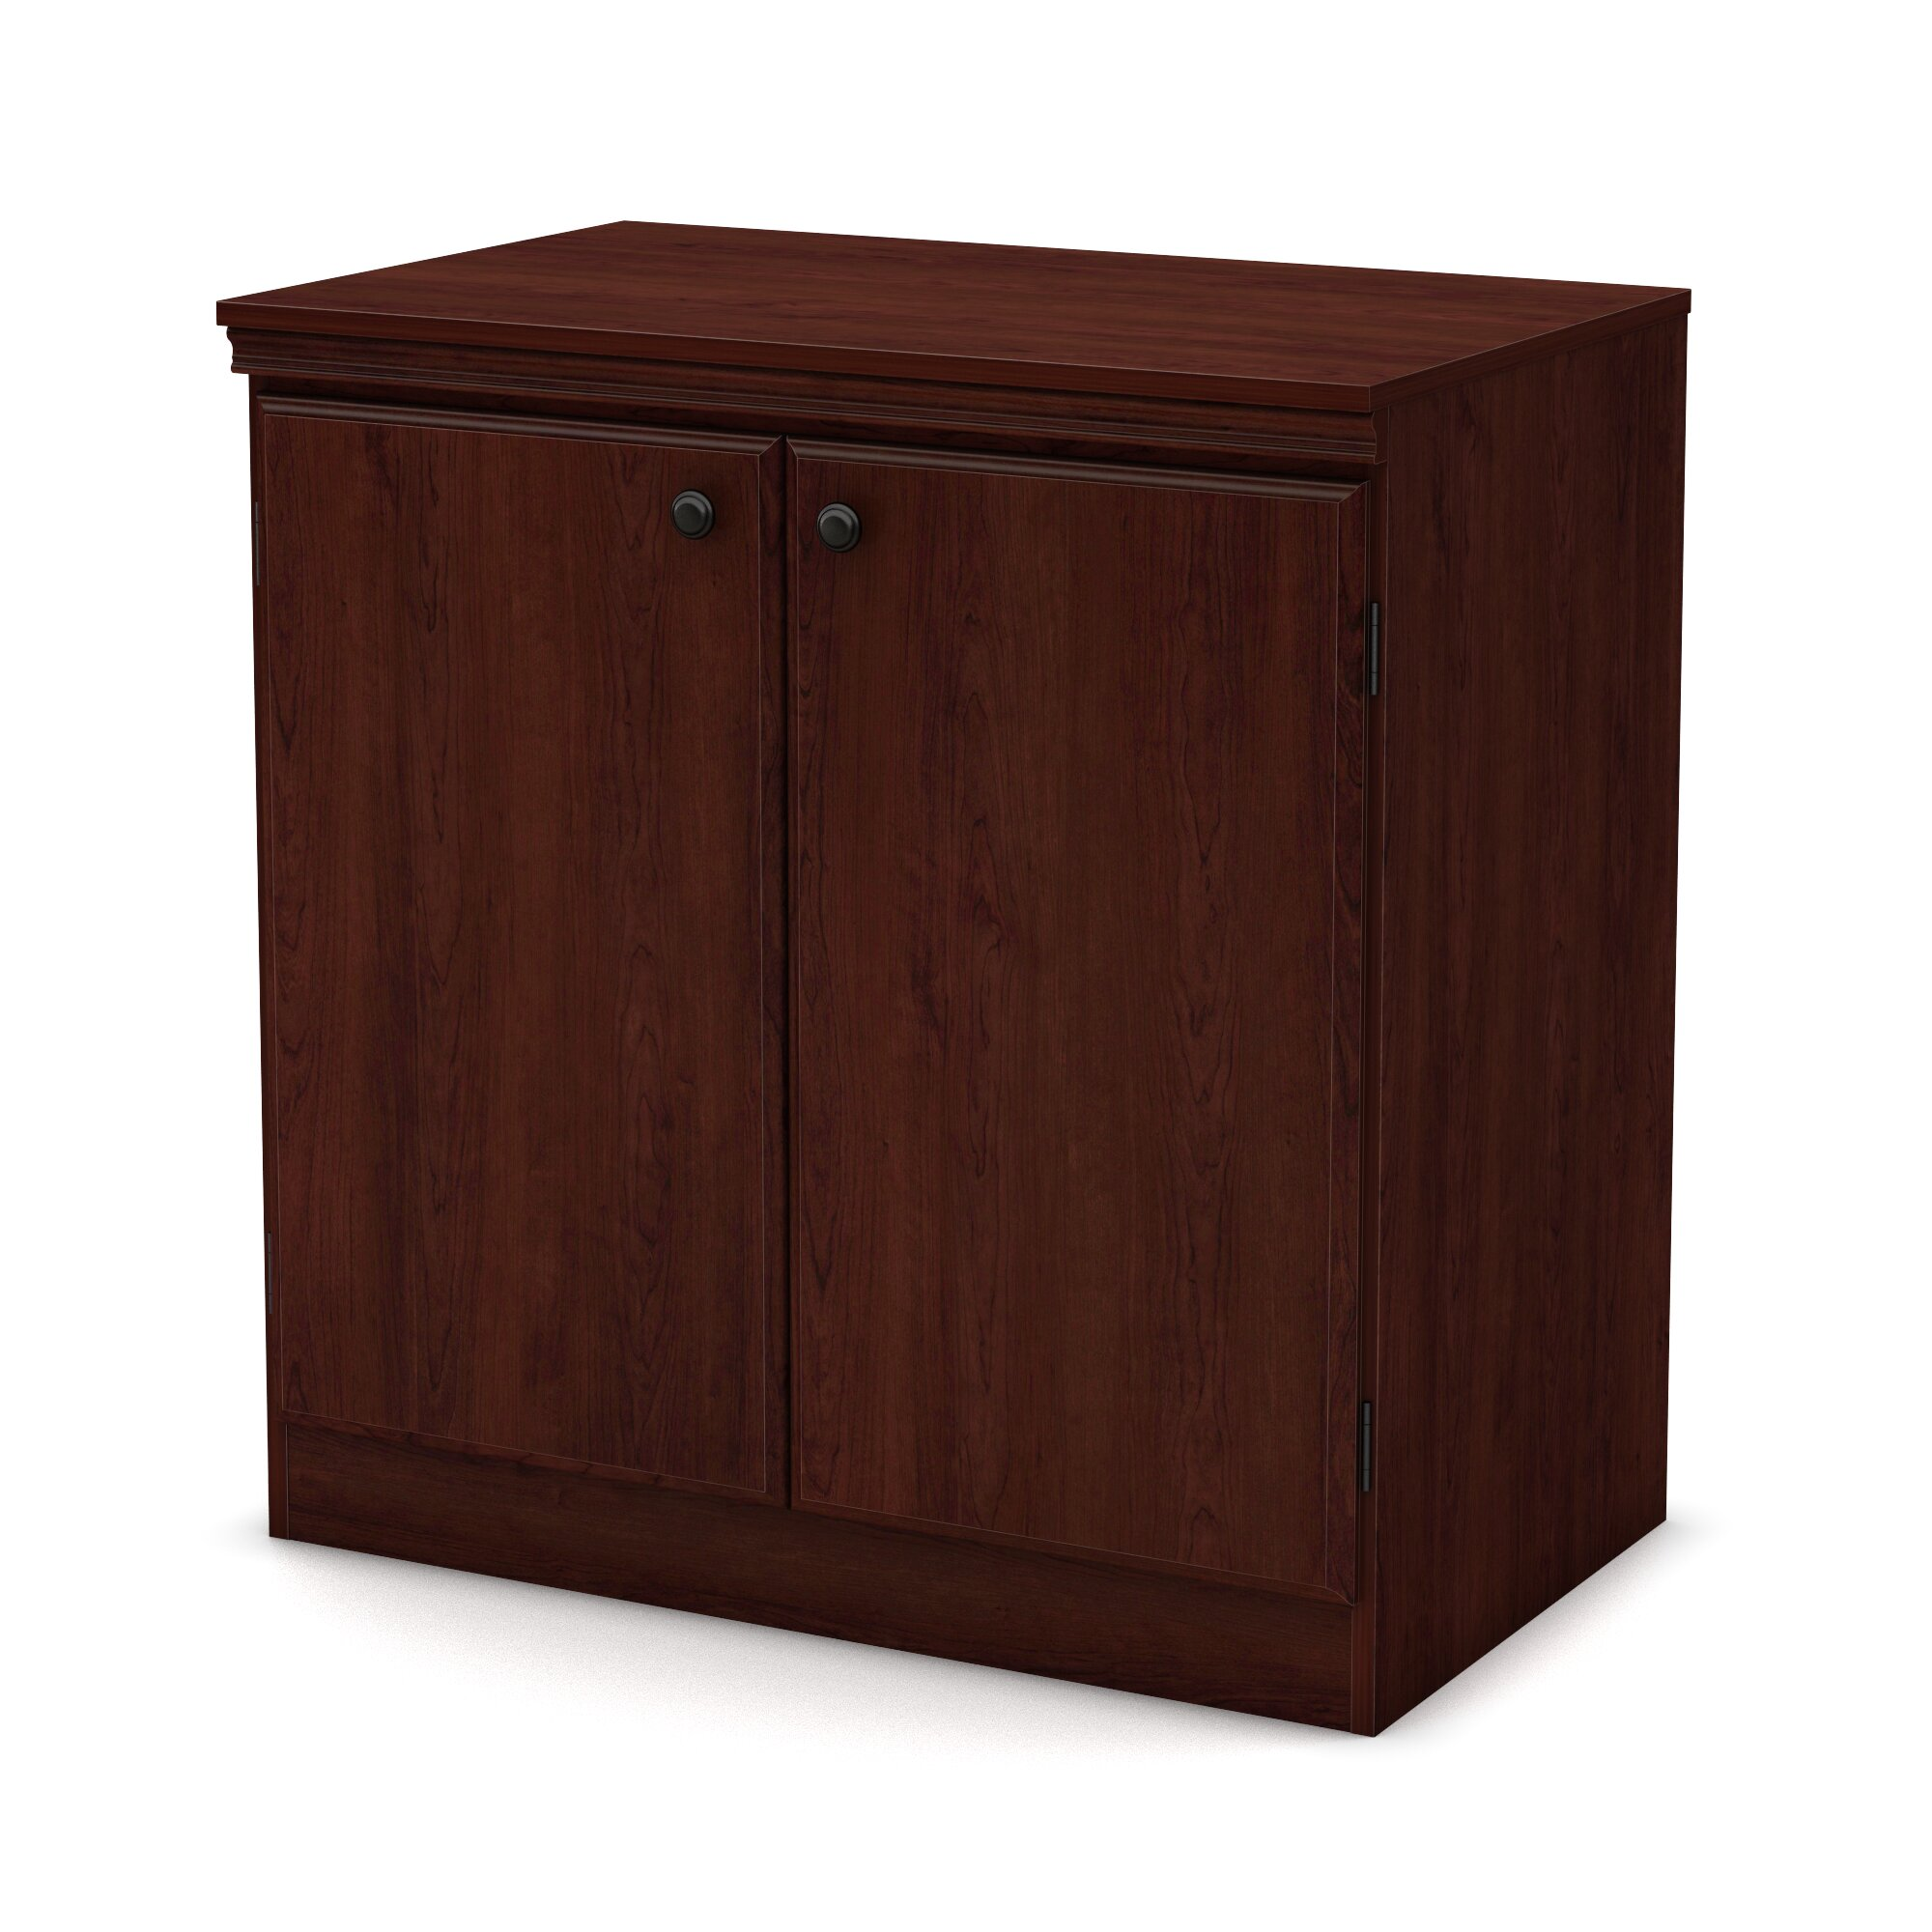 South shore morgan 2 door storage cabinet reviews wayfair for 1 door storage cabinet